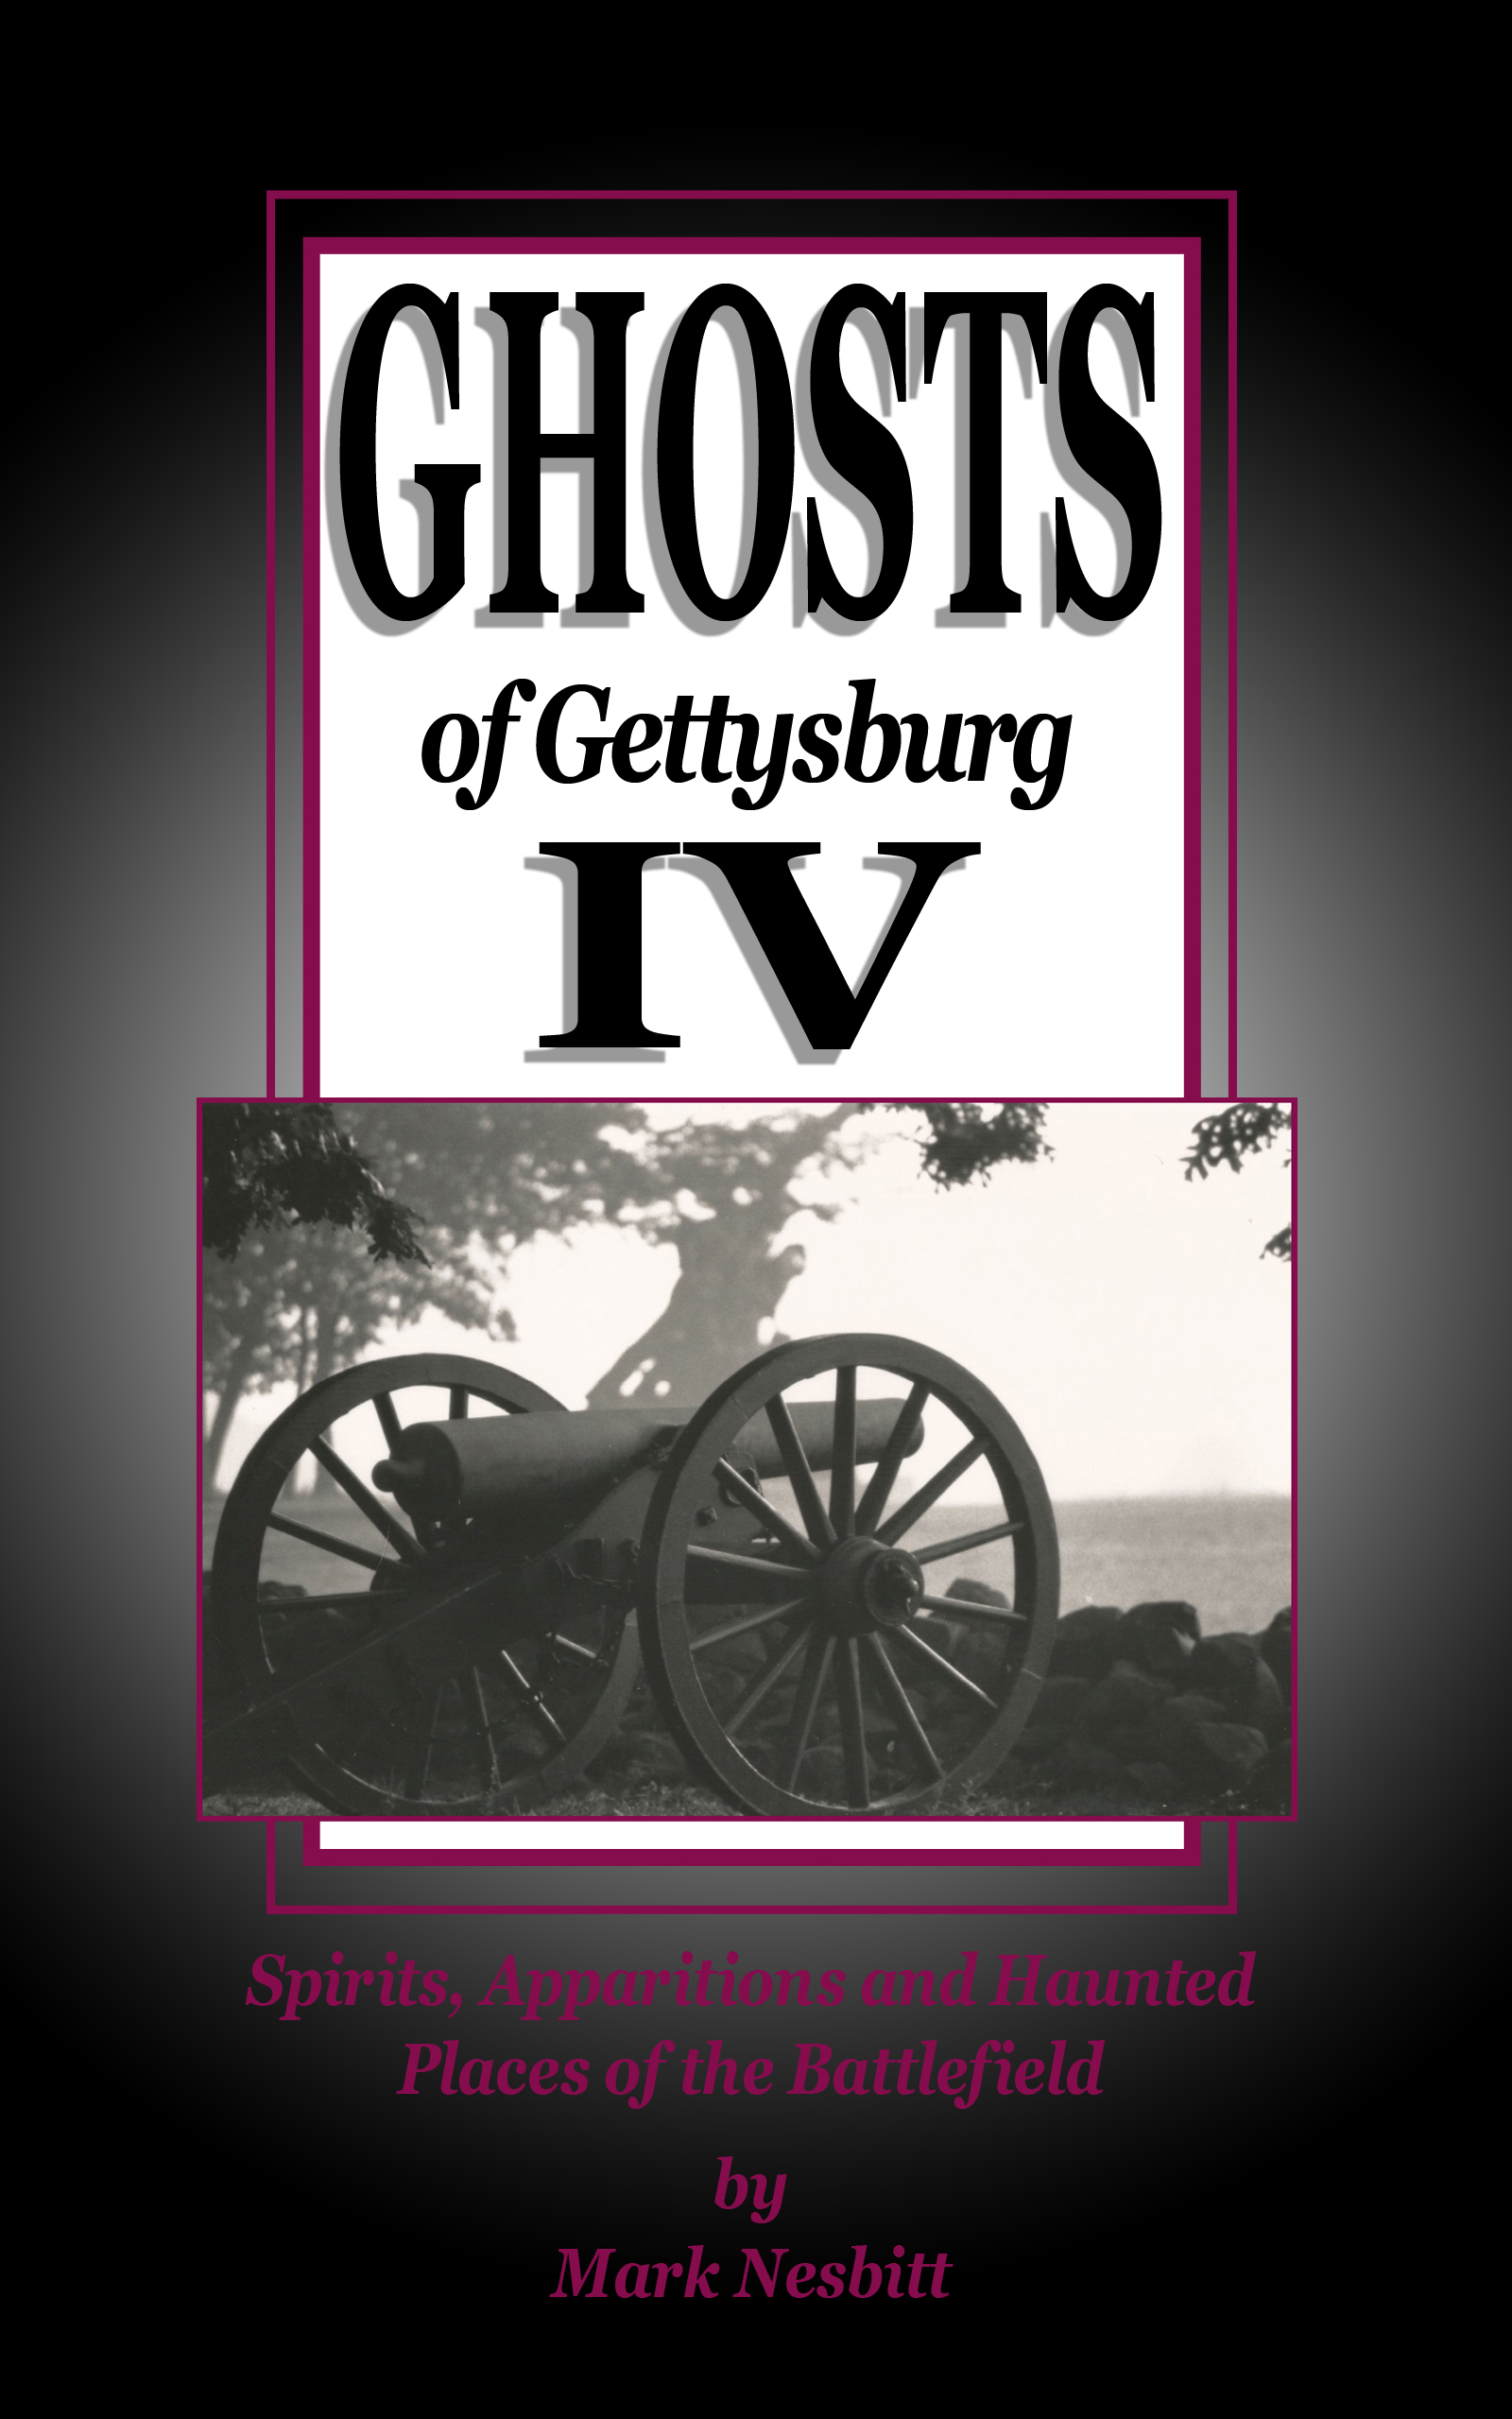 Ghosts of Gettysburg II: Spirits, Apparitions and Haunted Places of the Battlefield